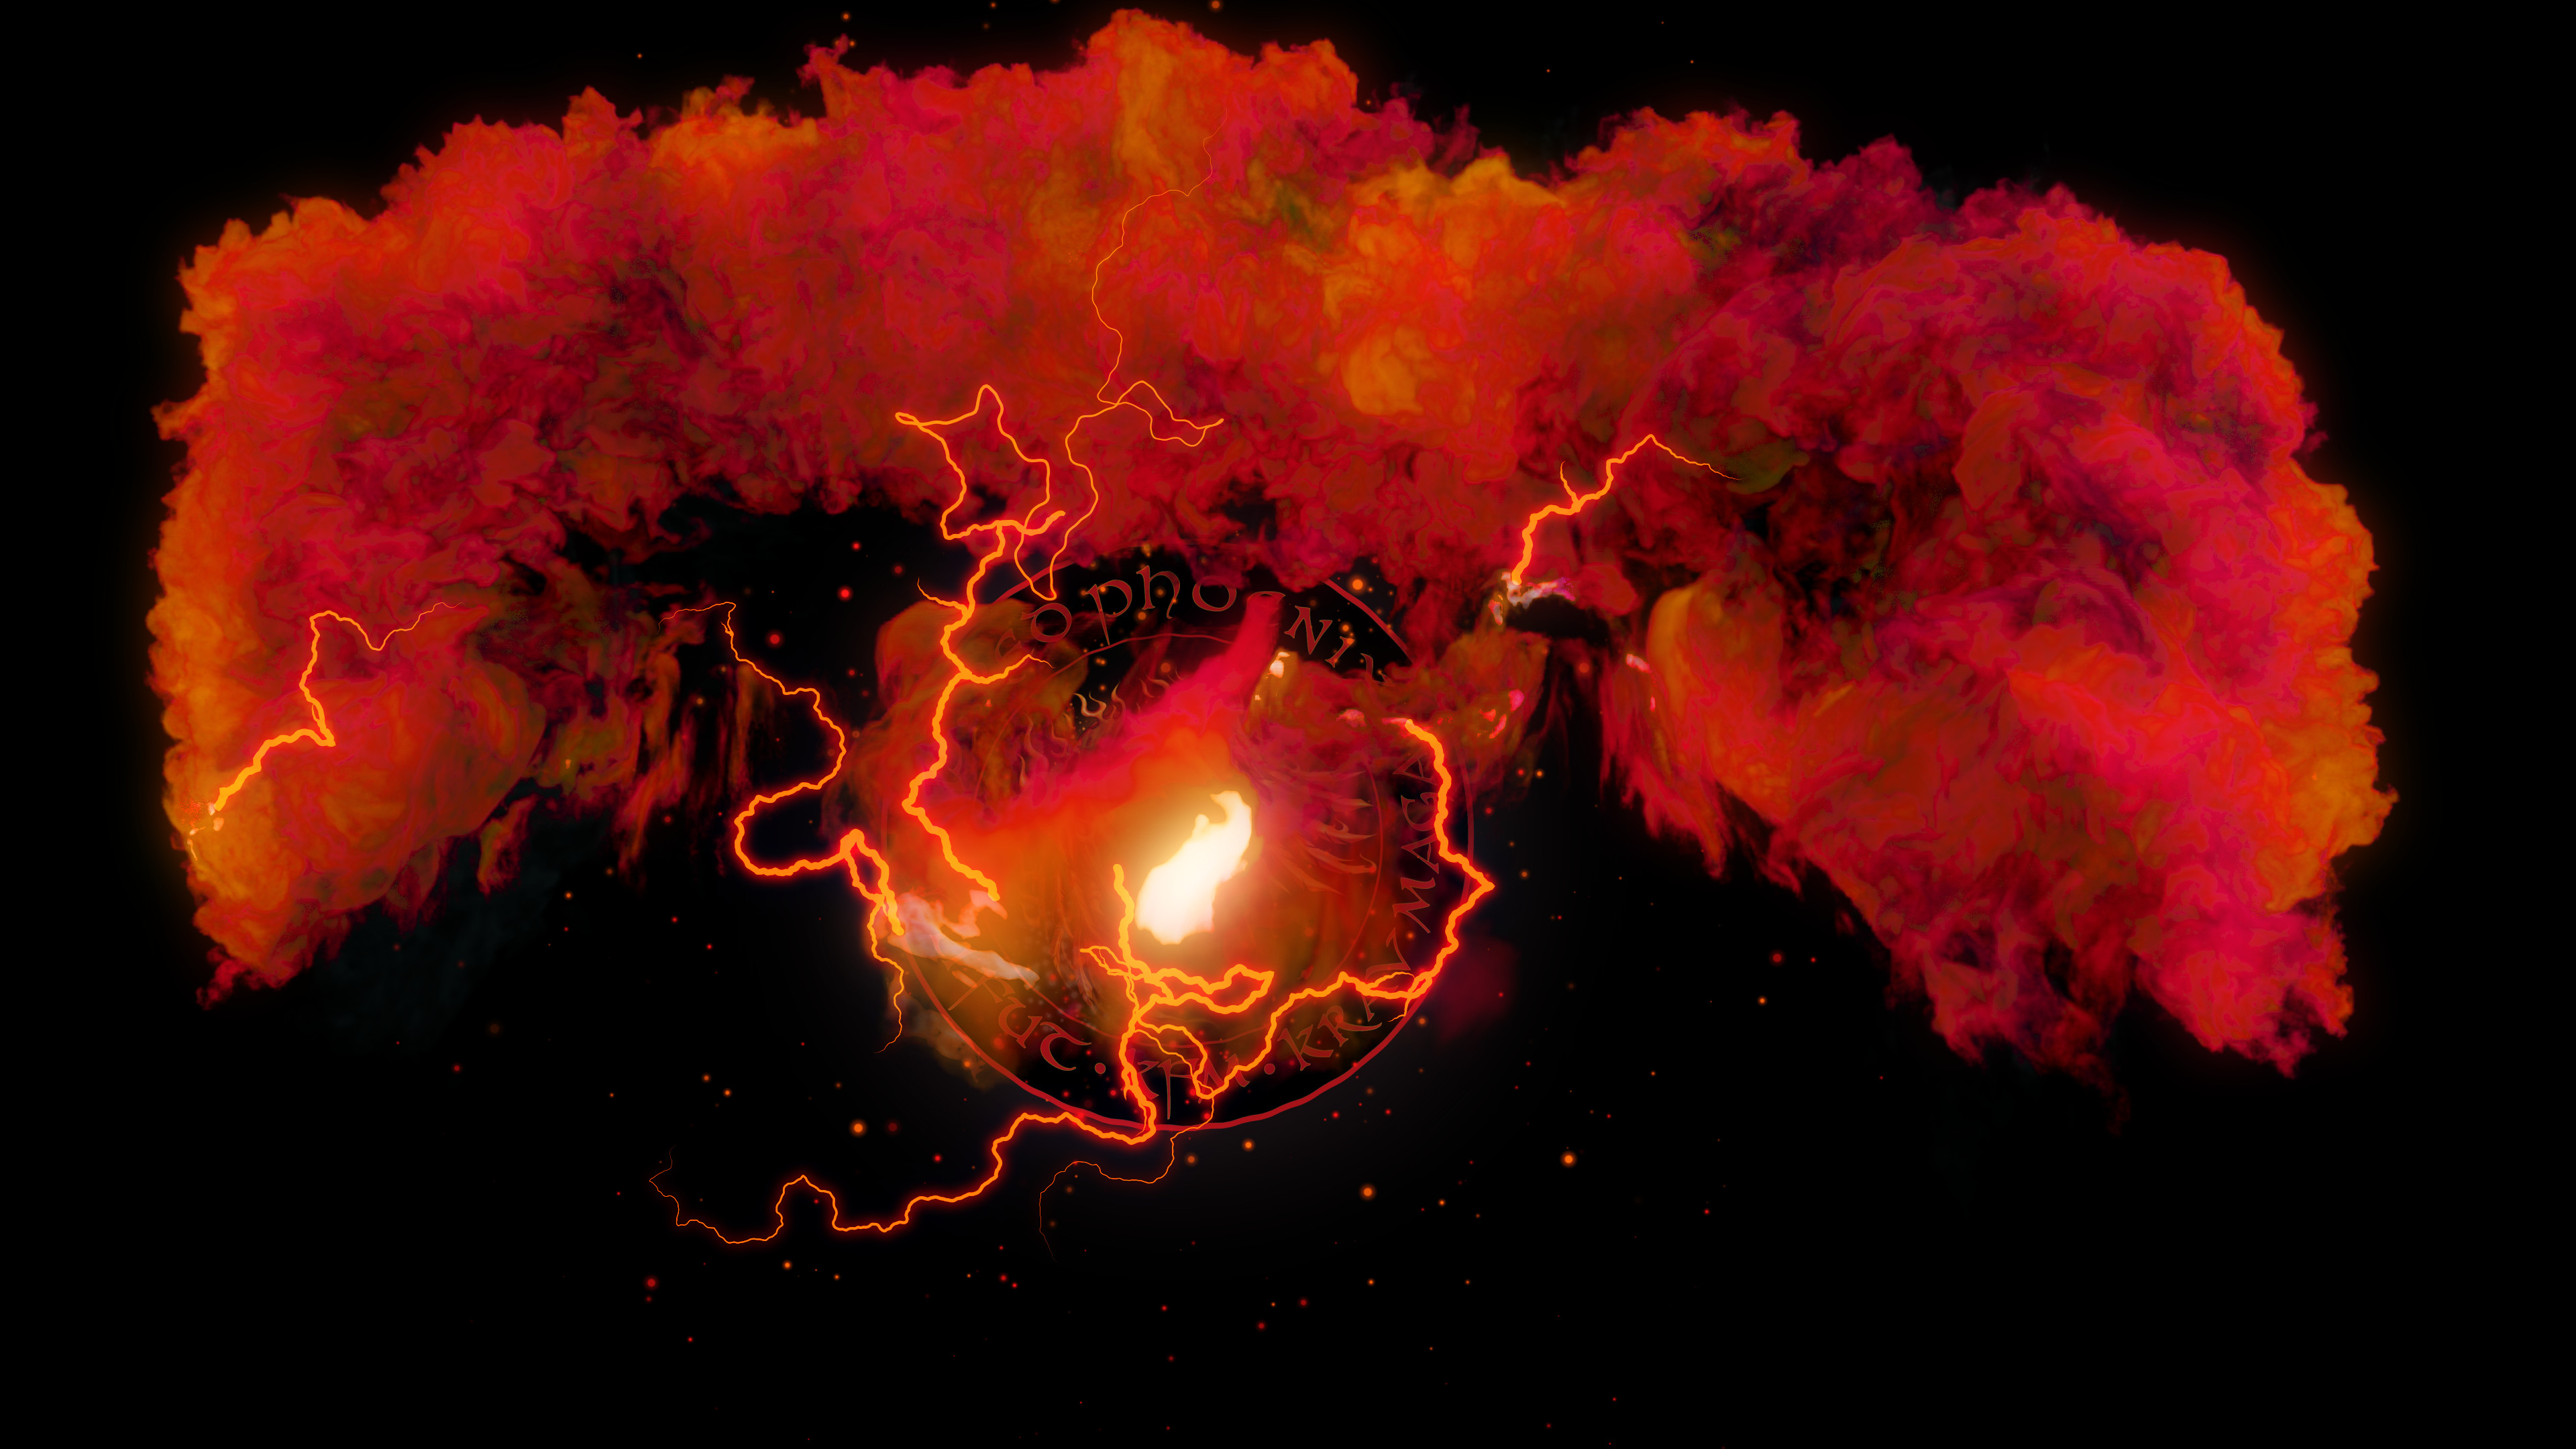 Screen shot from logo intro.  All flames/ explosions in Houdini, everything else in After Effects.